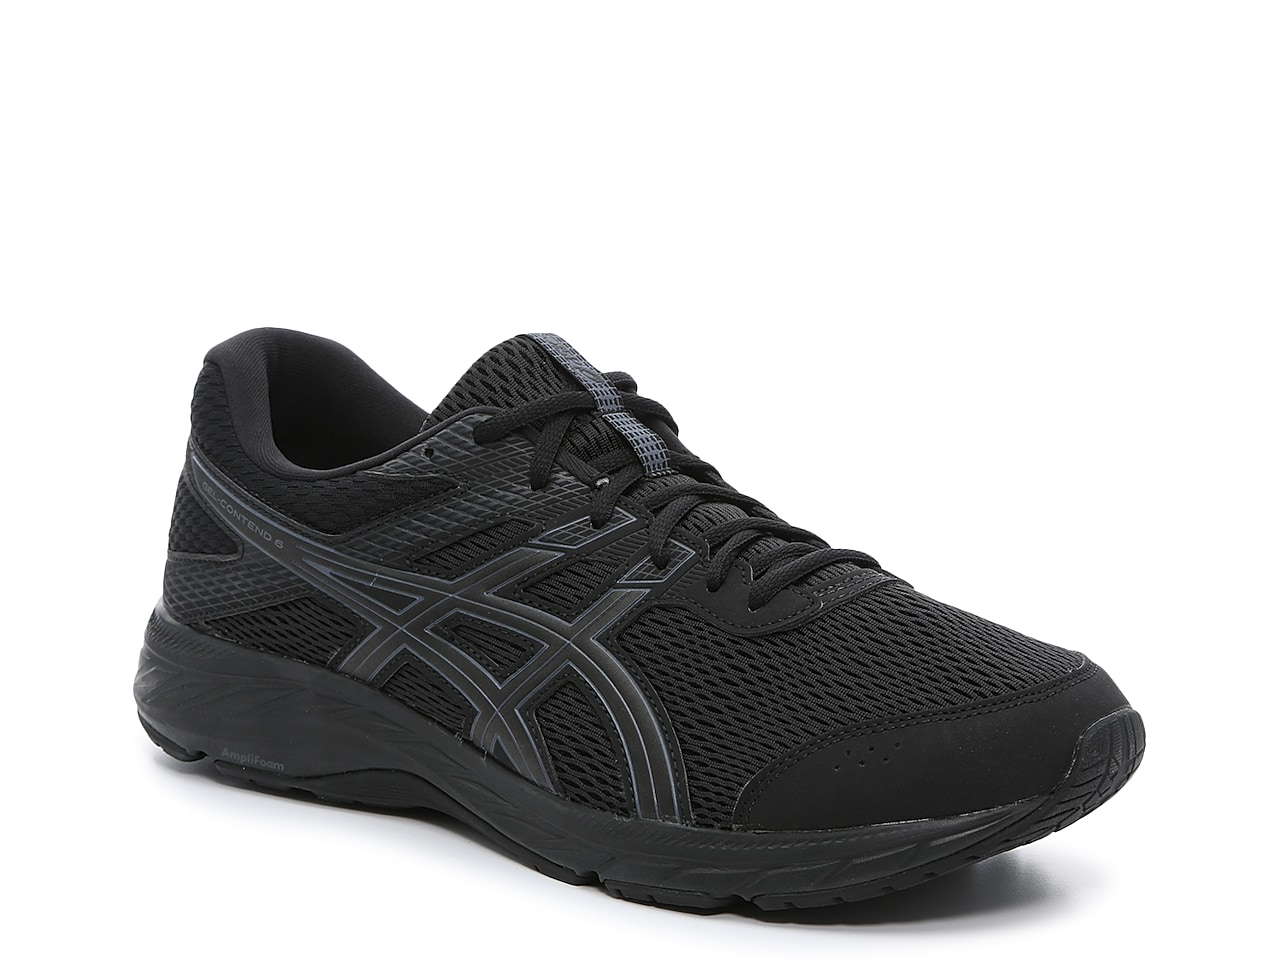 GEL-Contend 6 4E Running Shoe - Men's